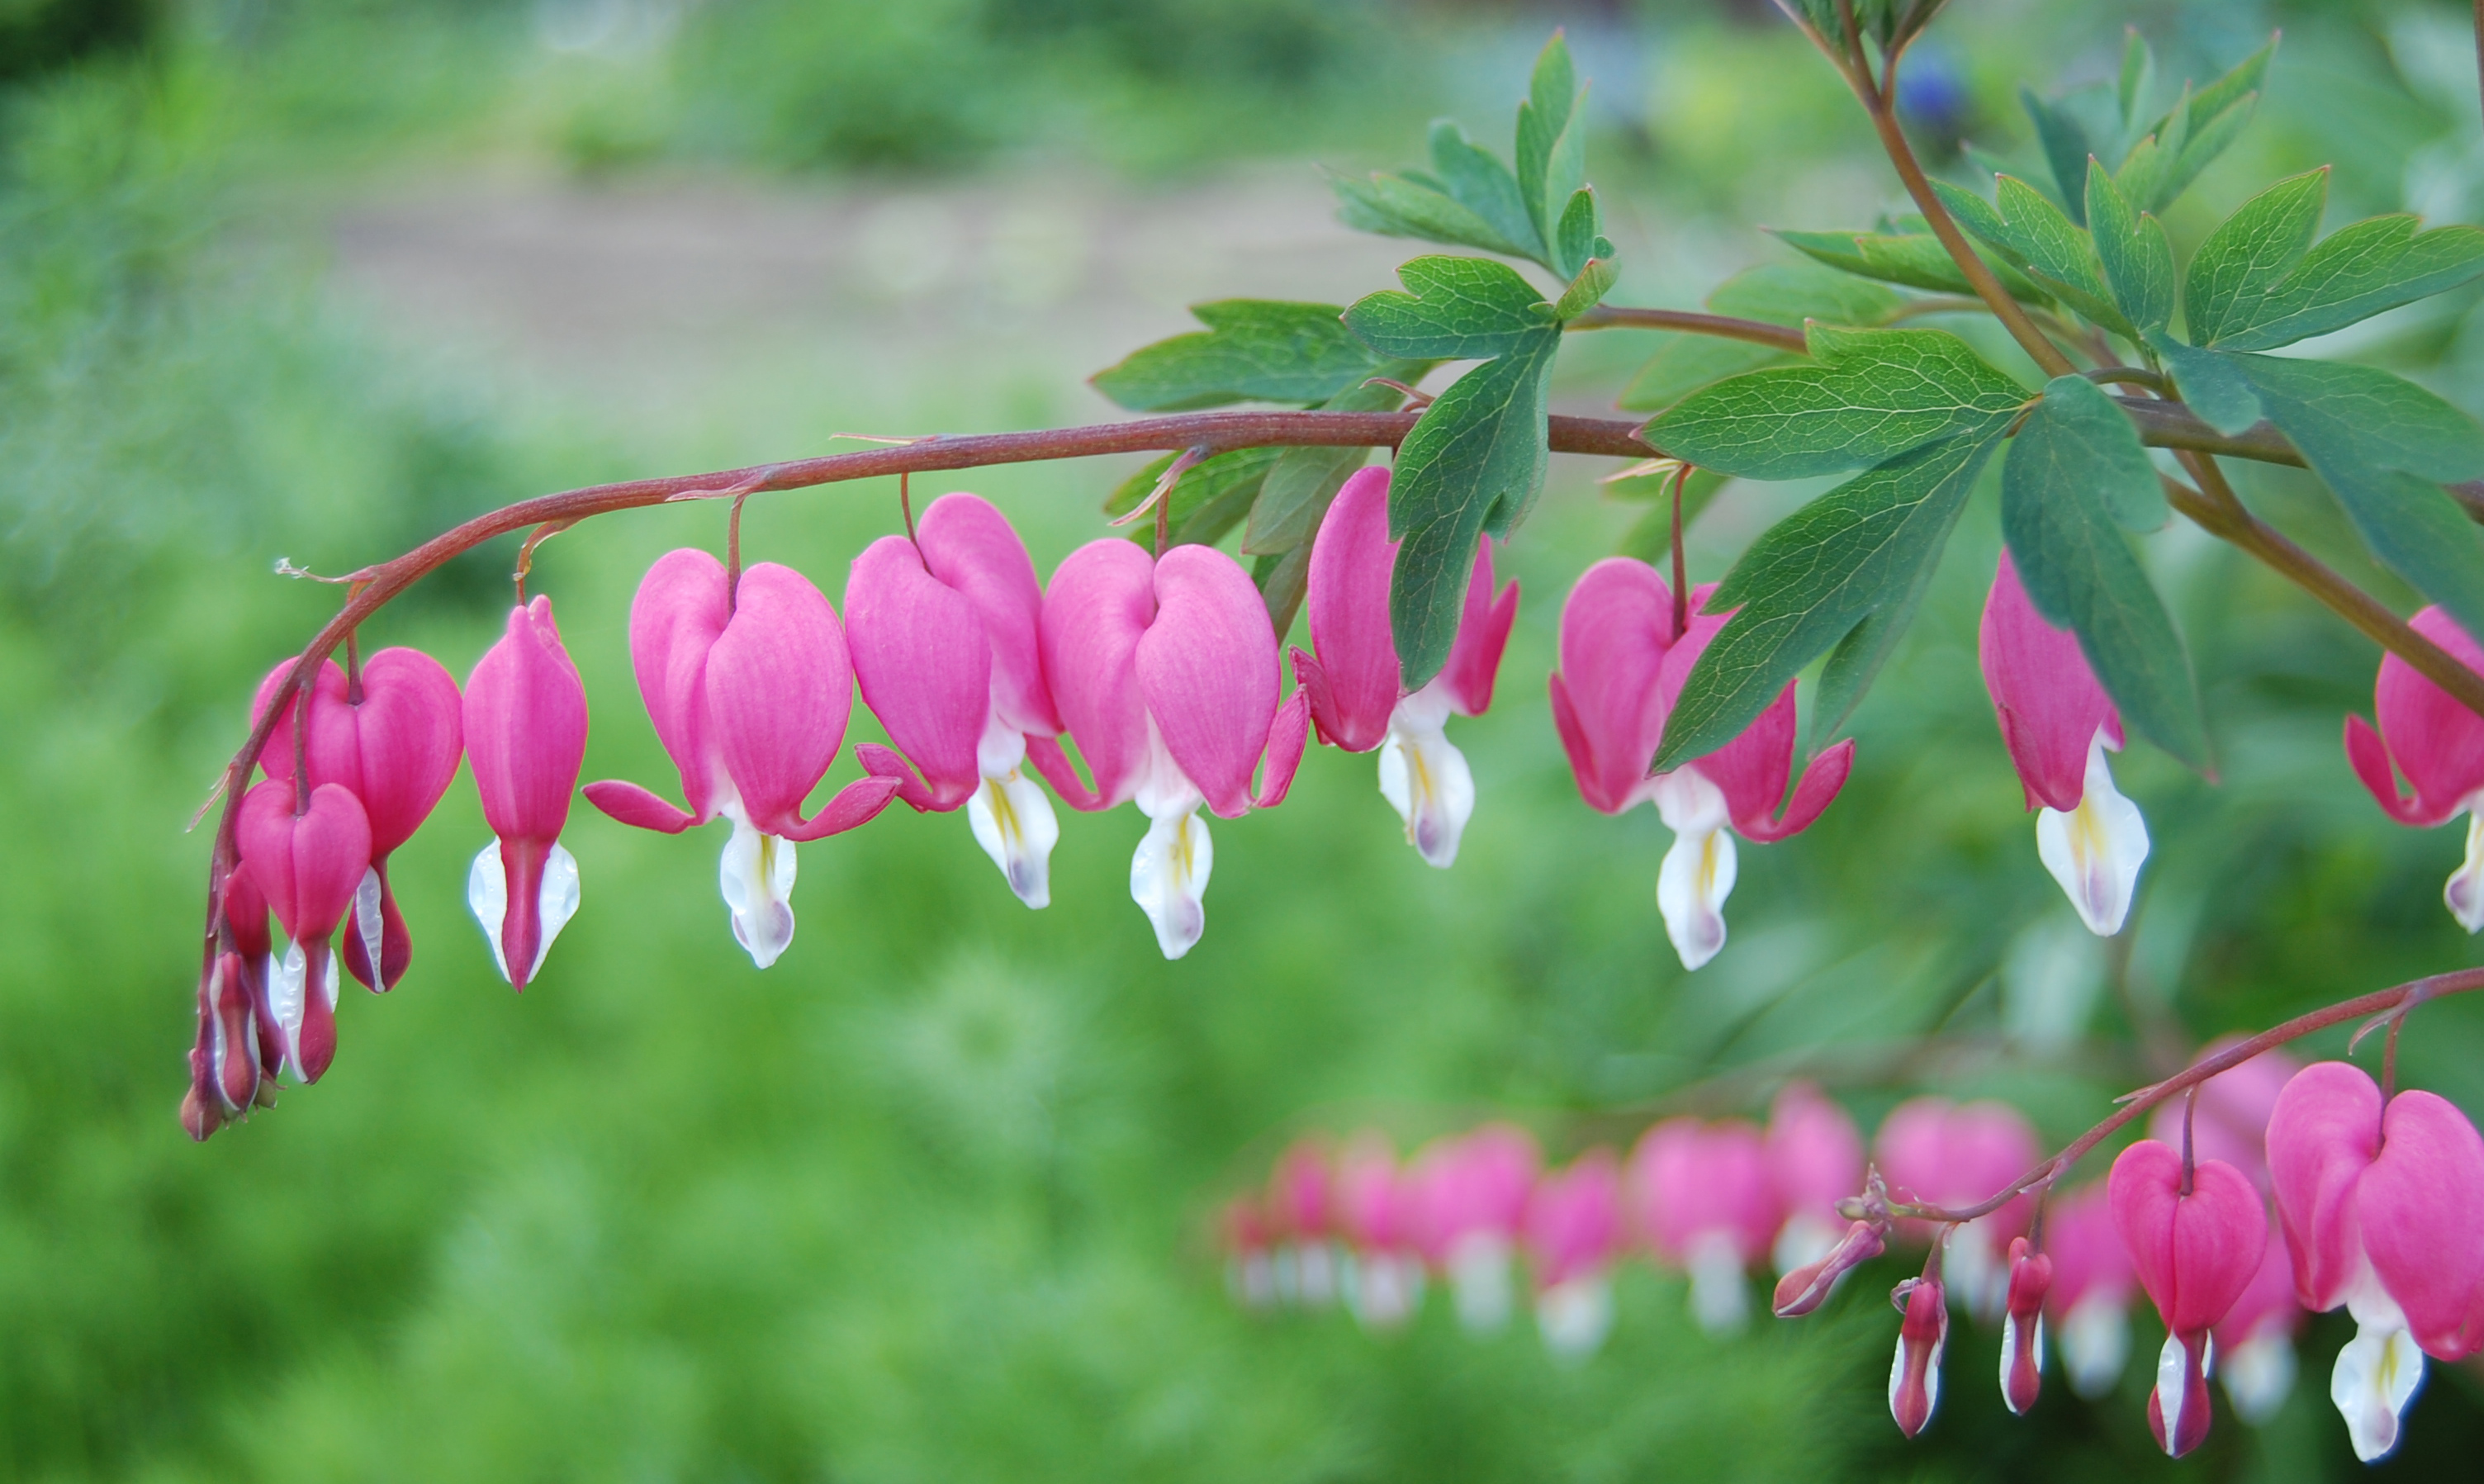 Dicentra bleeding hearts